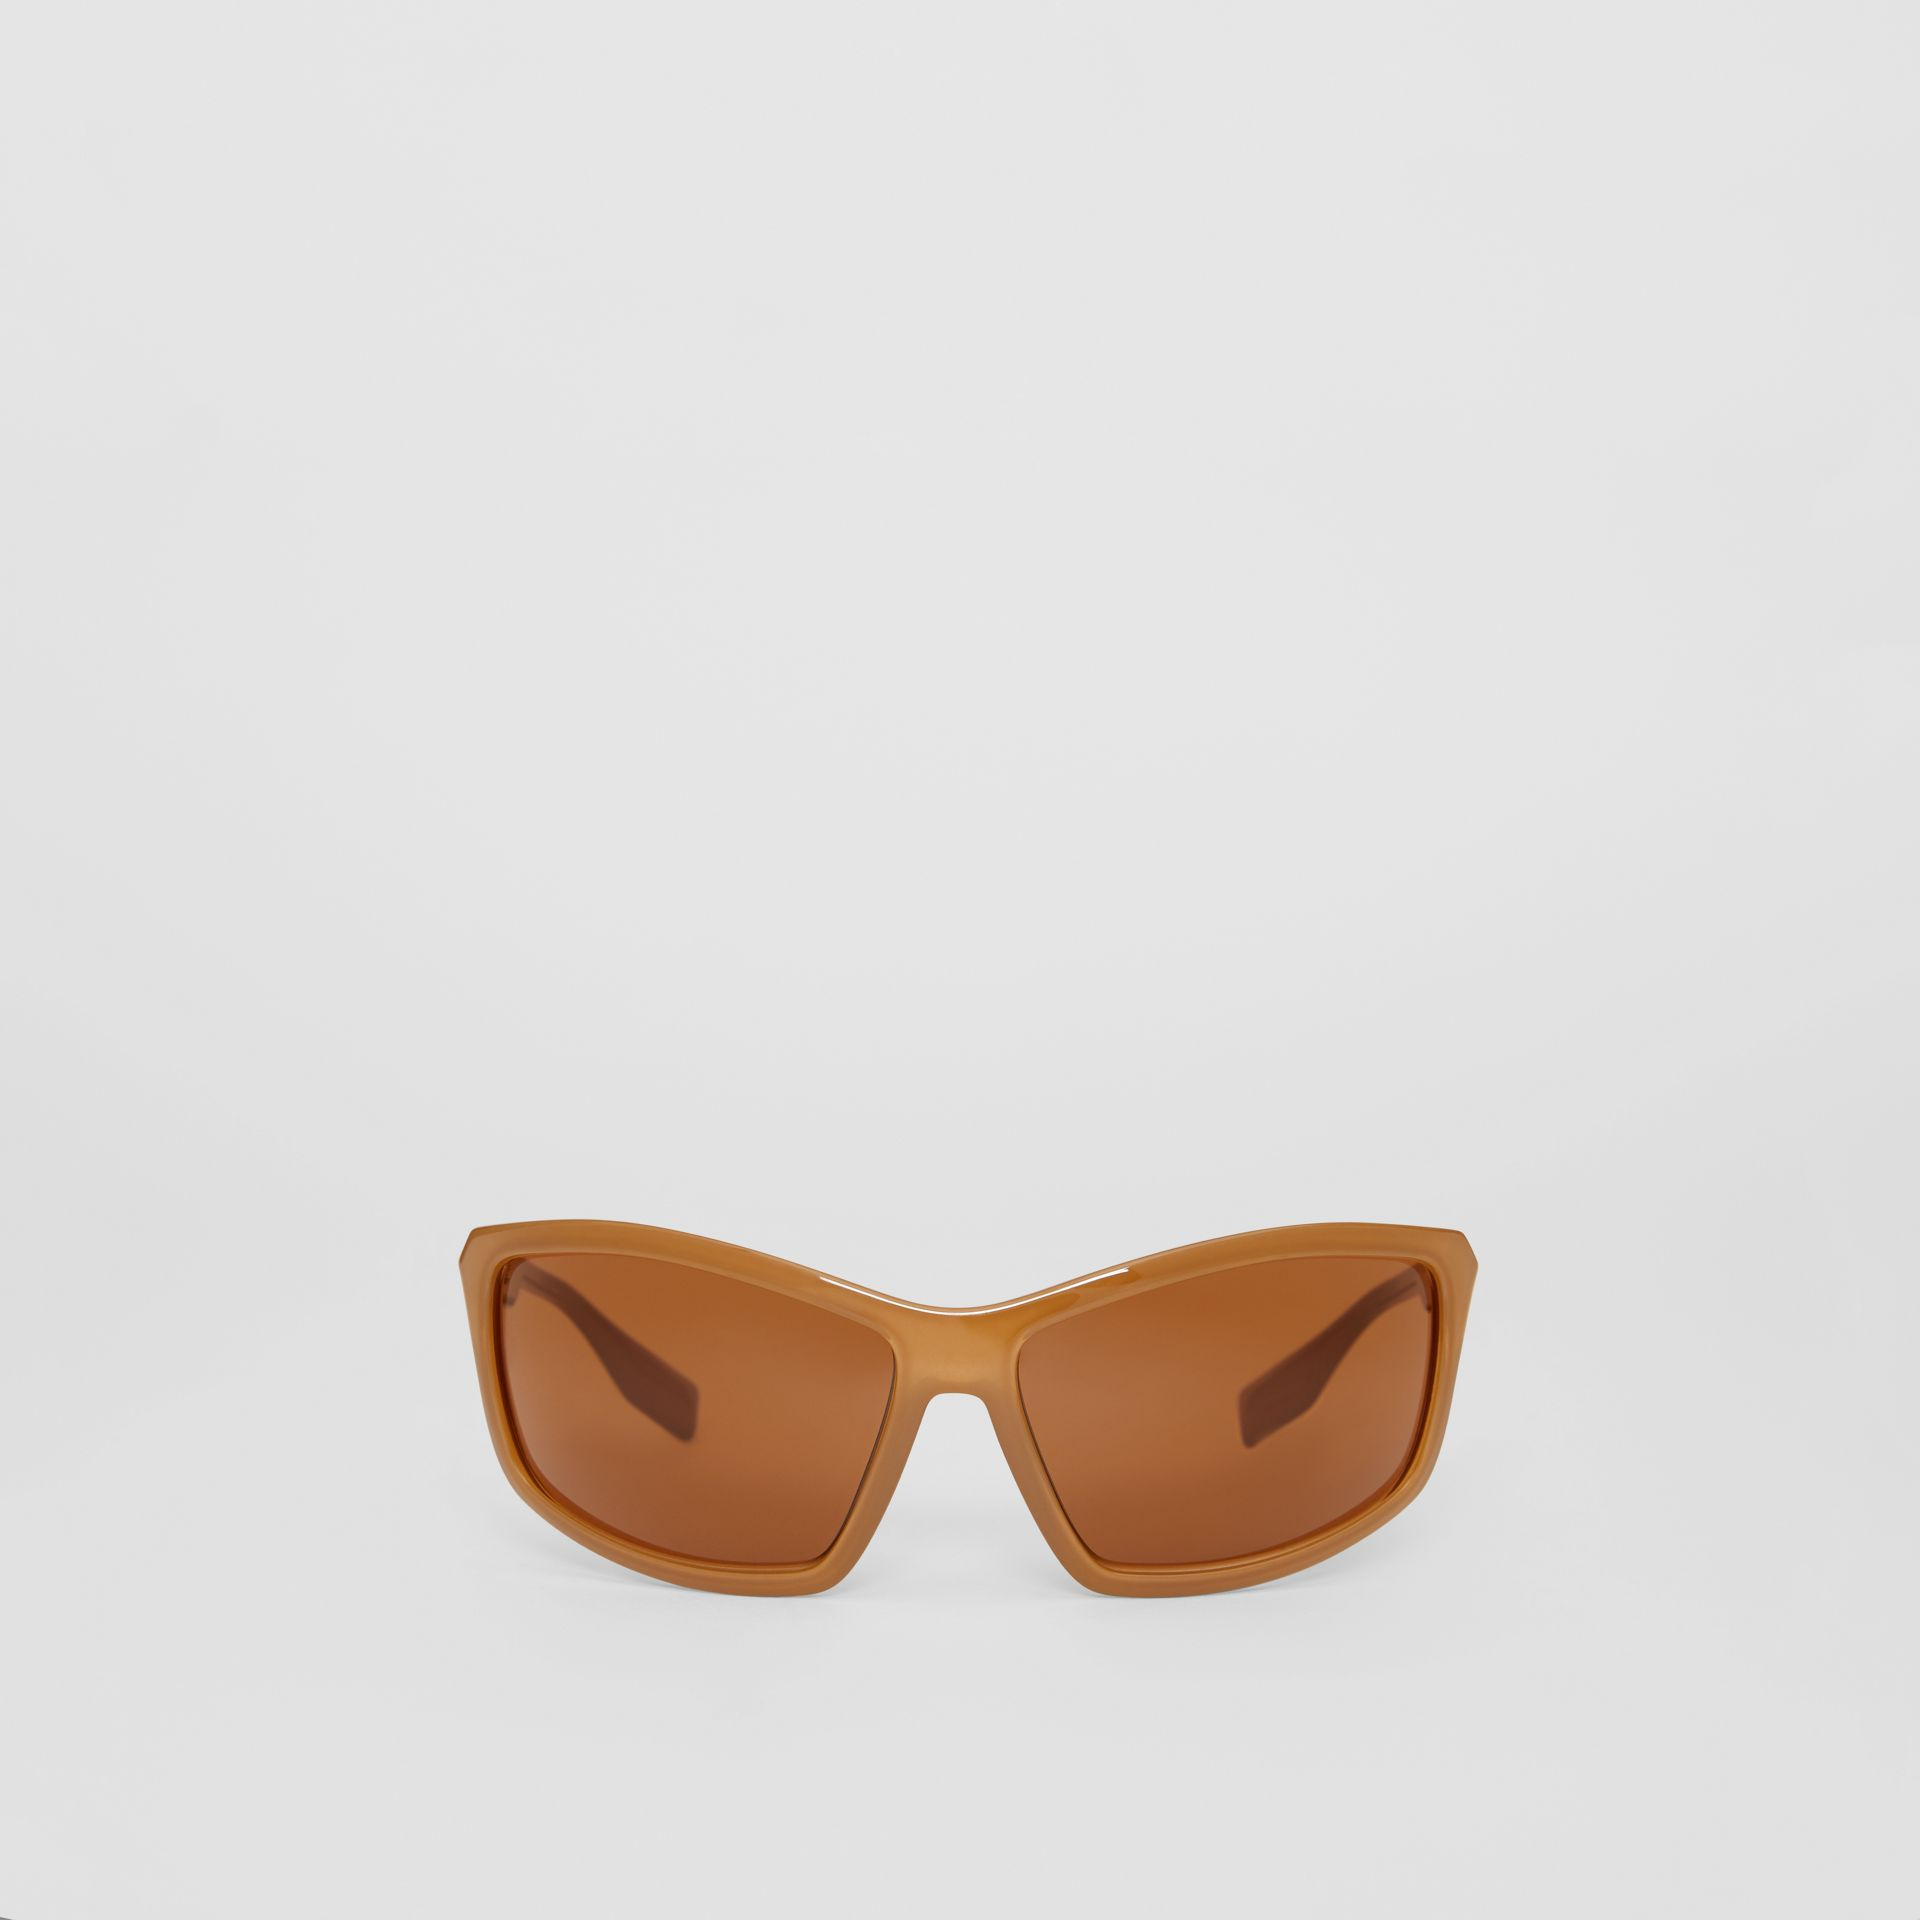 Wrap Frame Sunglasses in Amber Tortoiseshell - Men | Burberry United States - gallery image 0